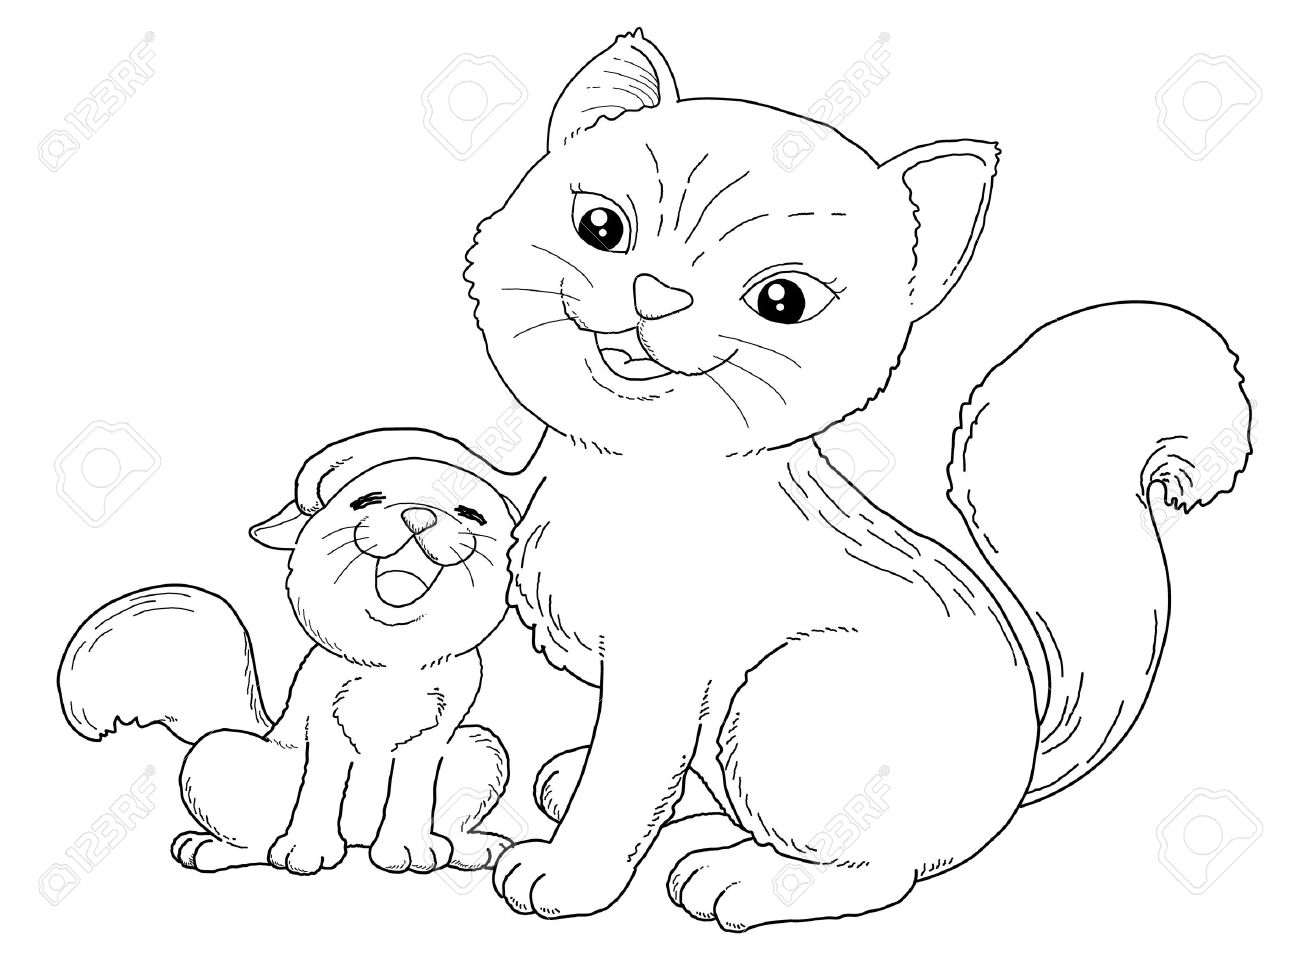 Coloring Book - Illustration Of Cat And Little Cat Royalty Free ...